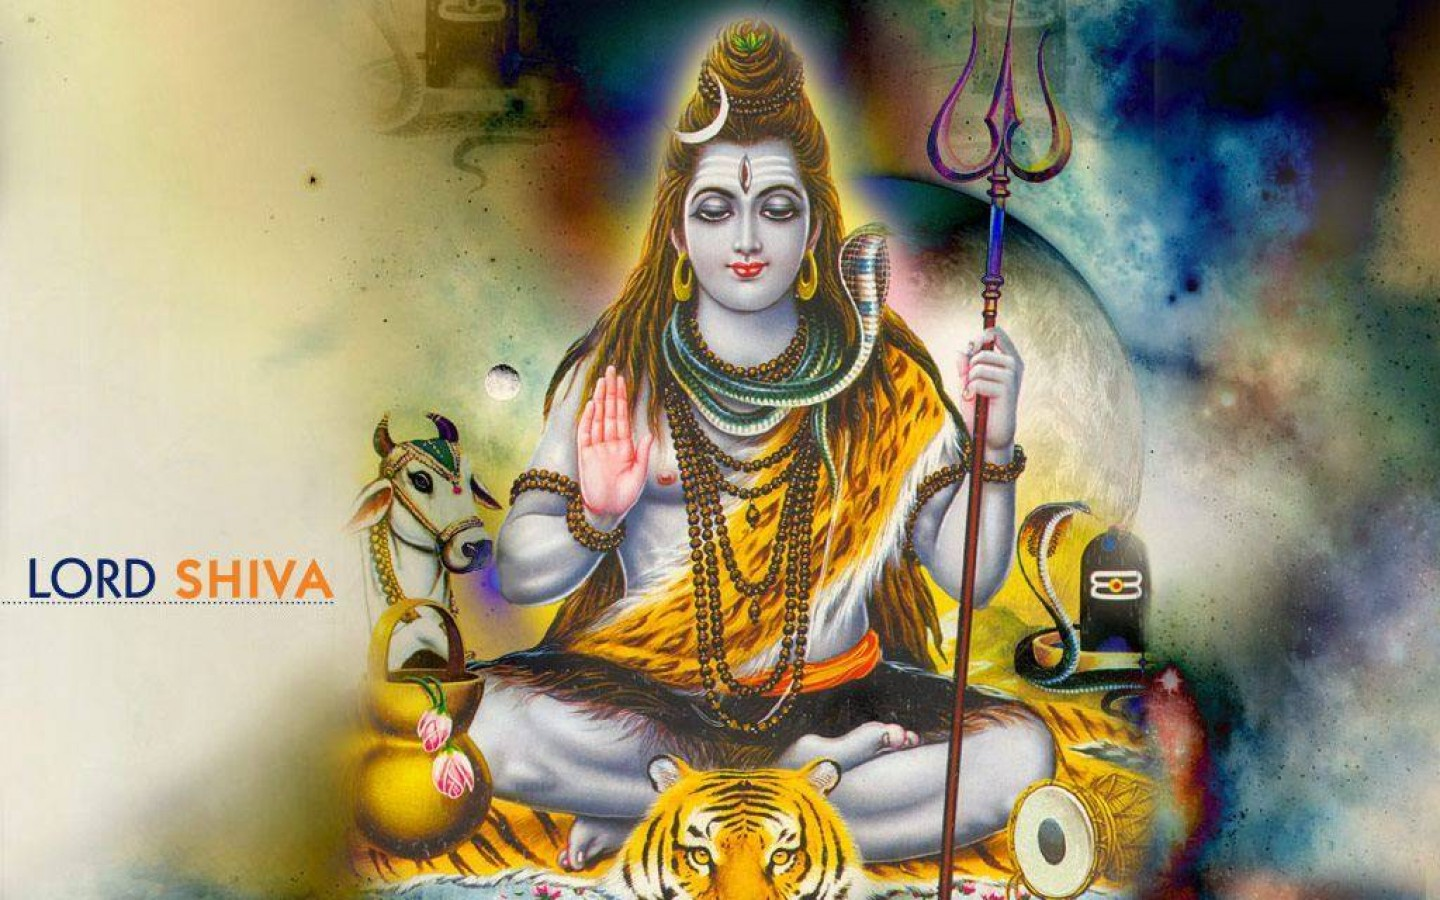 bhole-nath-images-mahadev-hd-wallpaper-1440x900